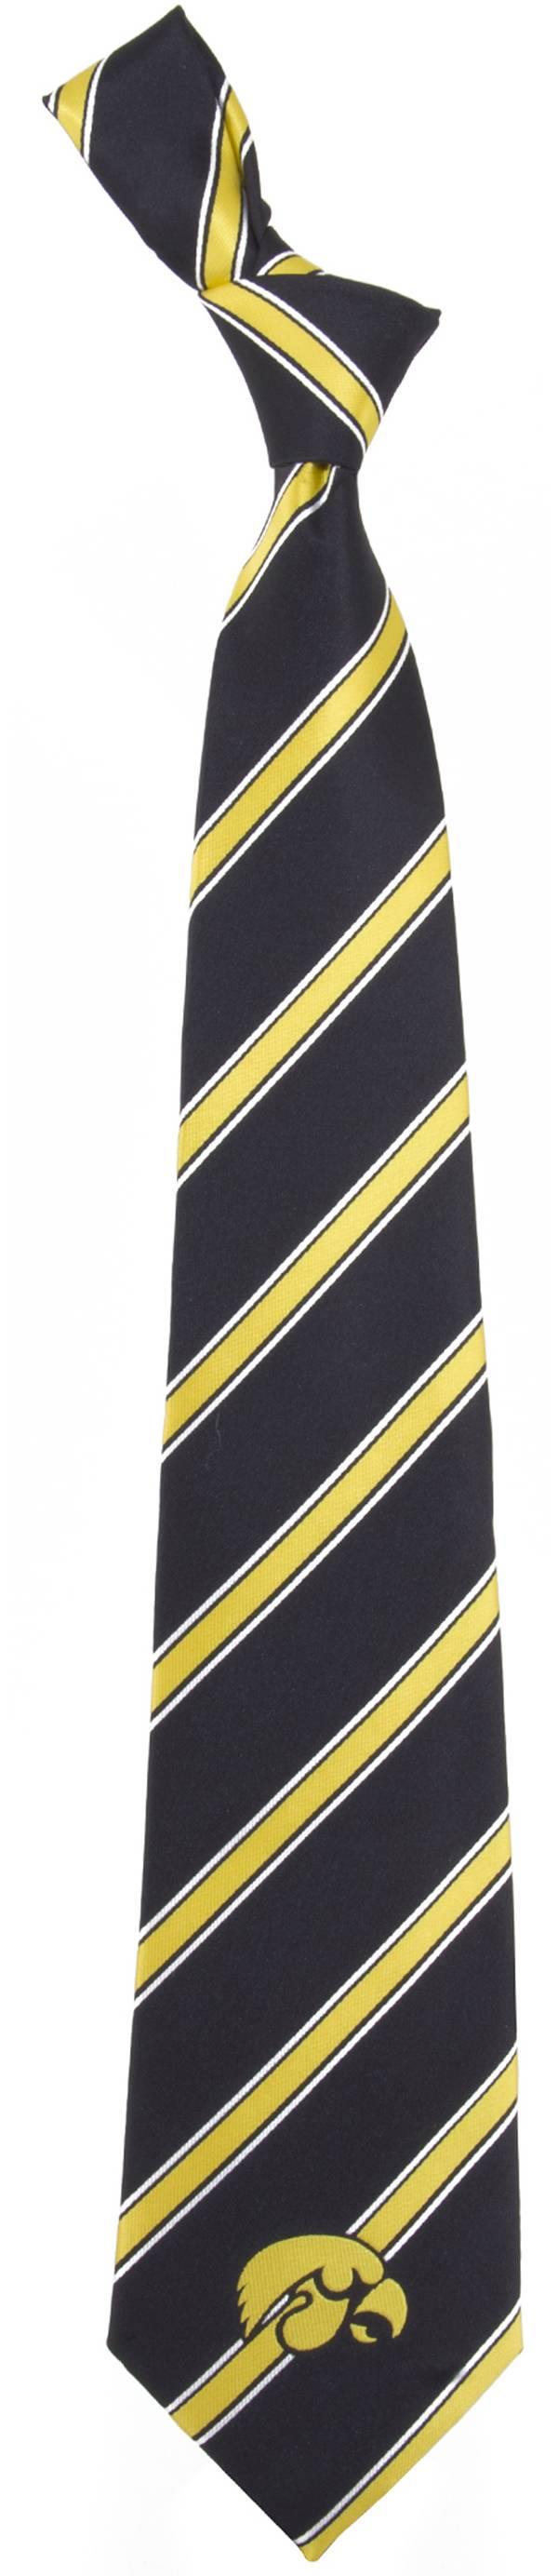 Eagles Wings Iowa Hawkeyes Woven Poly 1 Necktie product image